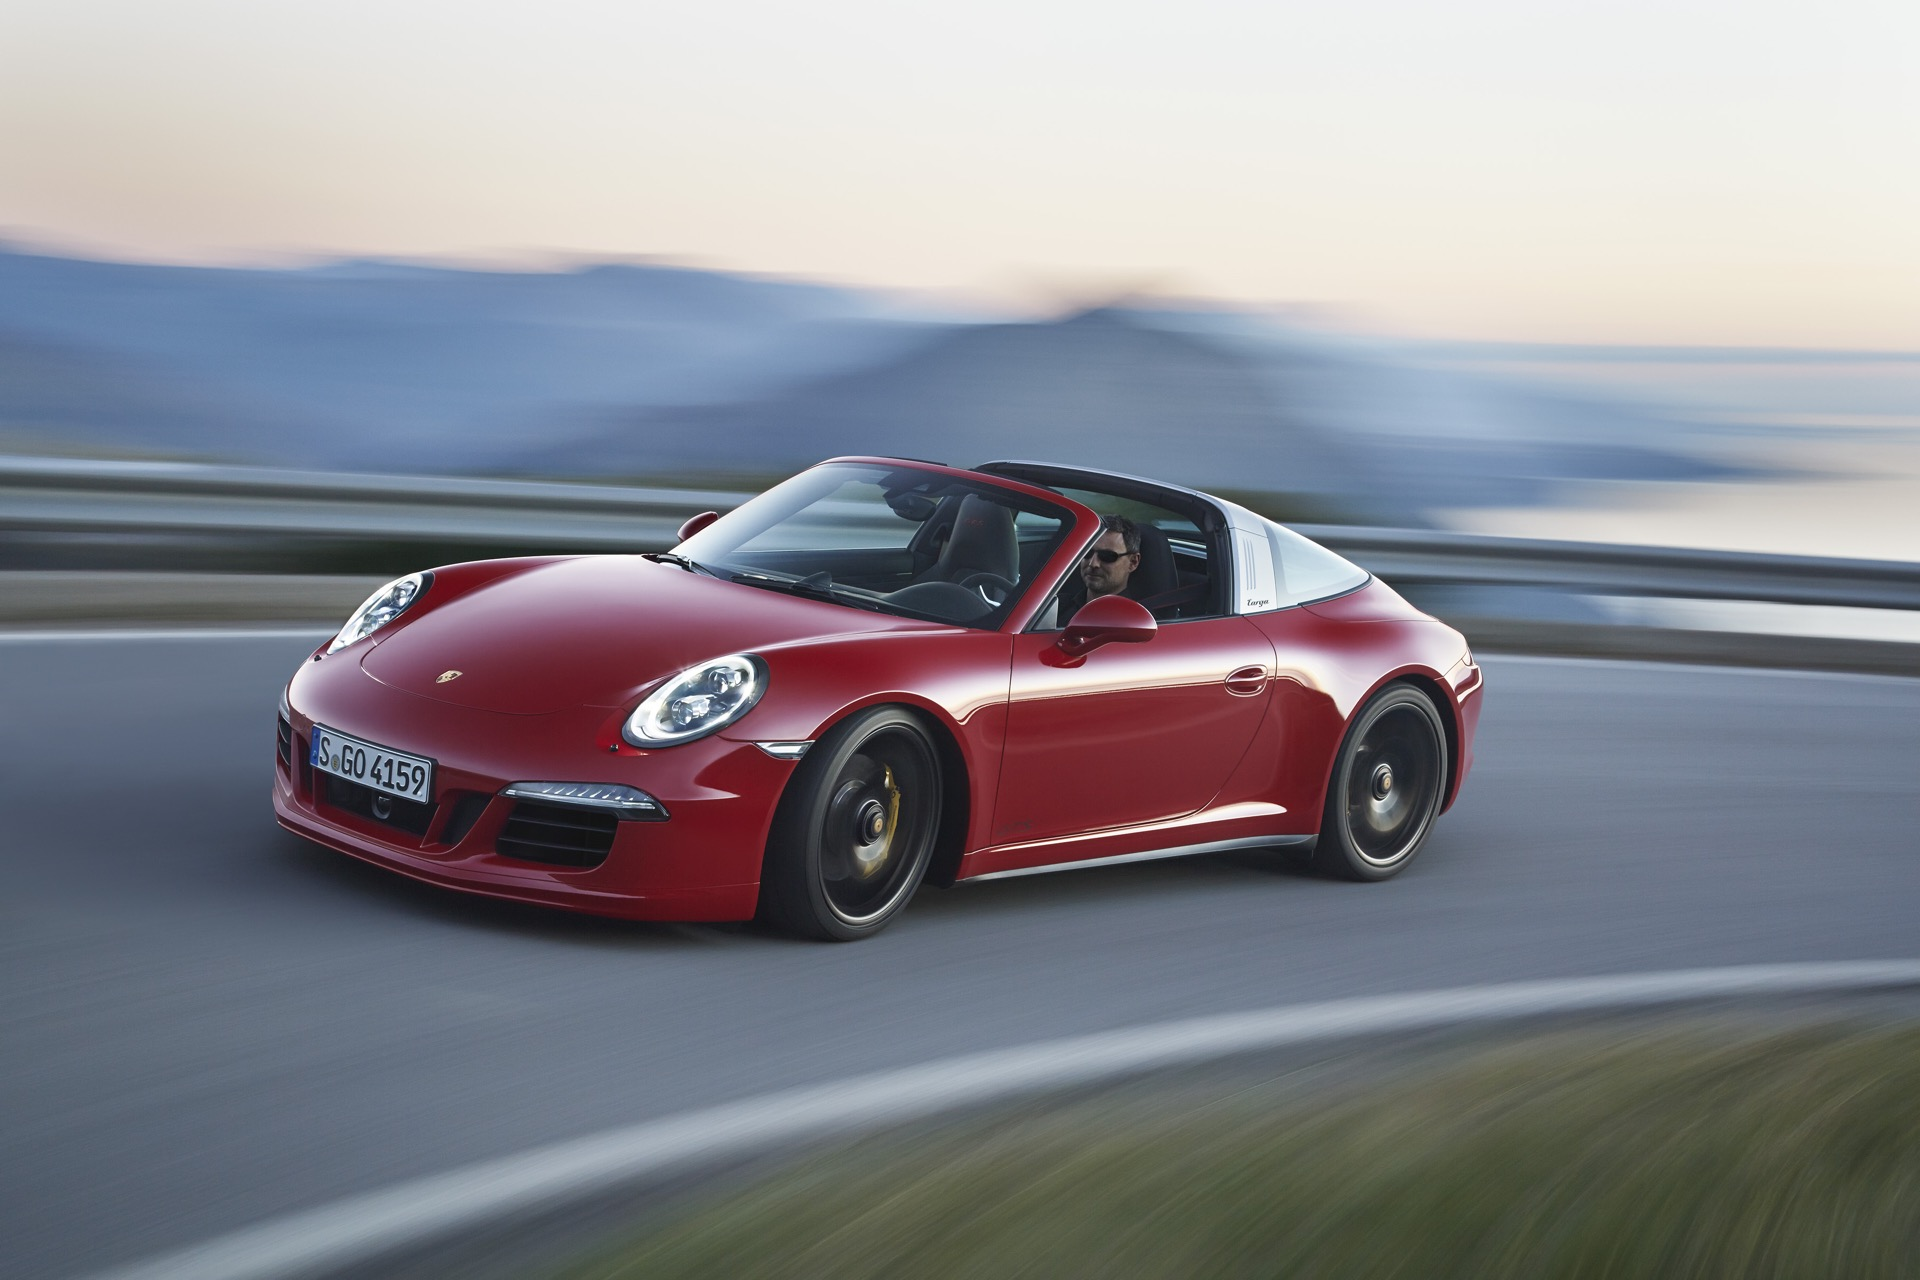 New And Used Porsche 911 Prices Photos Reviews Specs The Car Connection